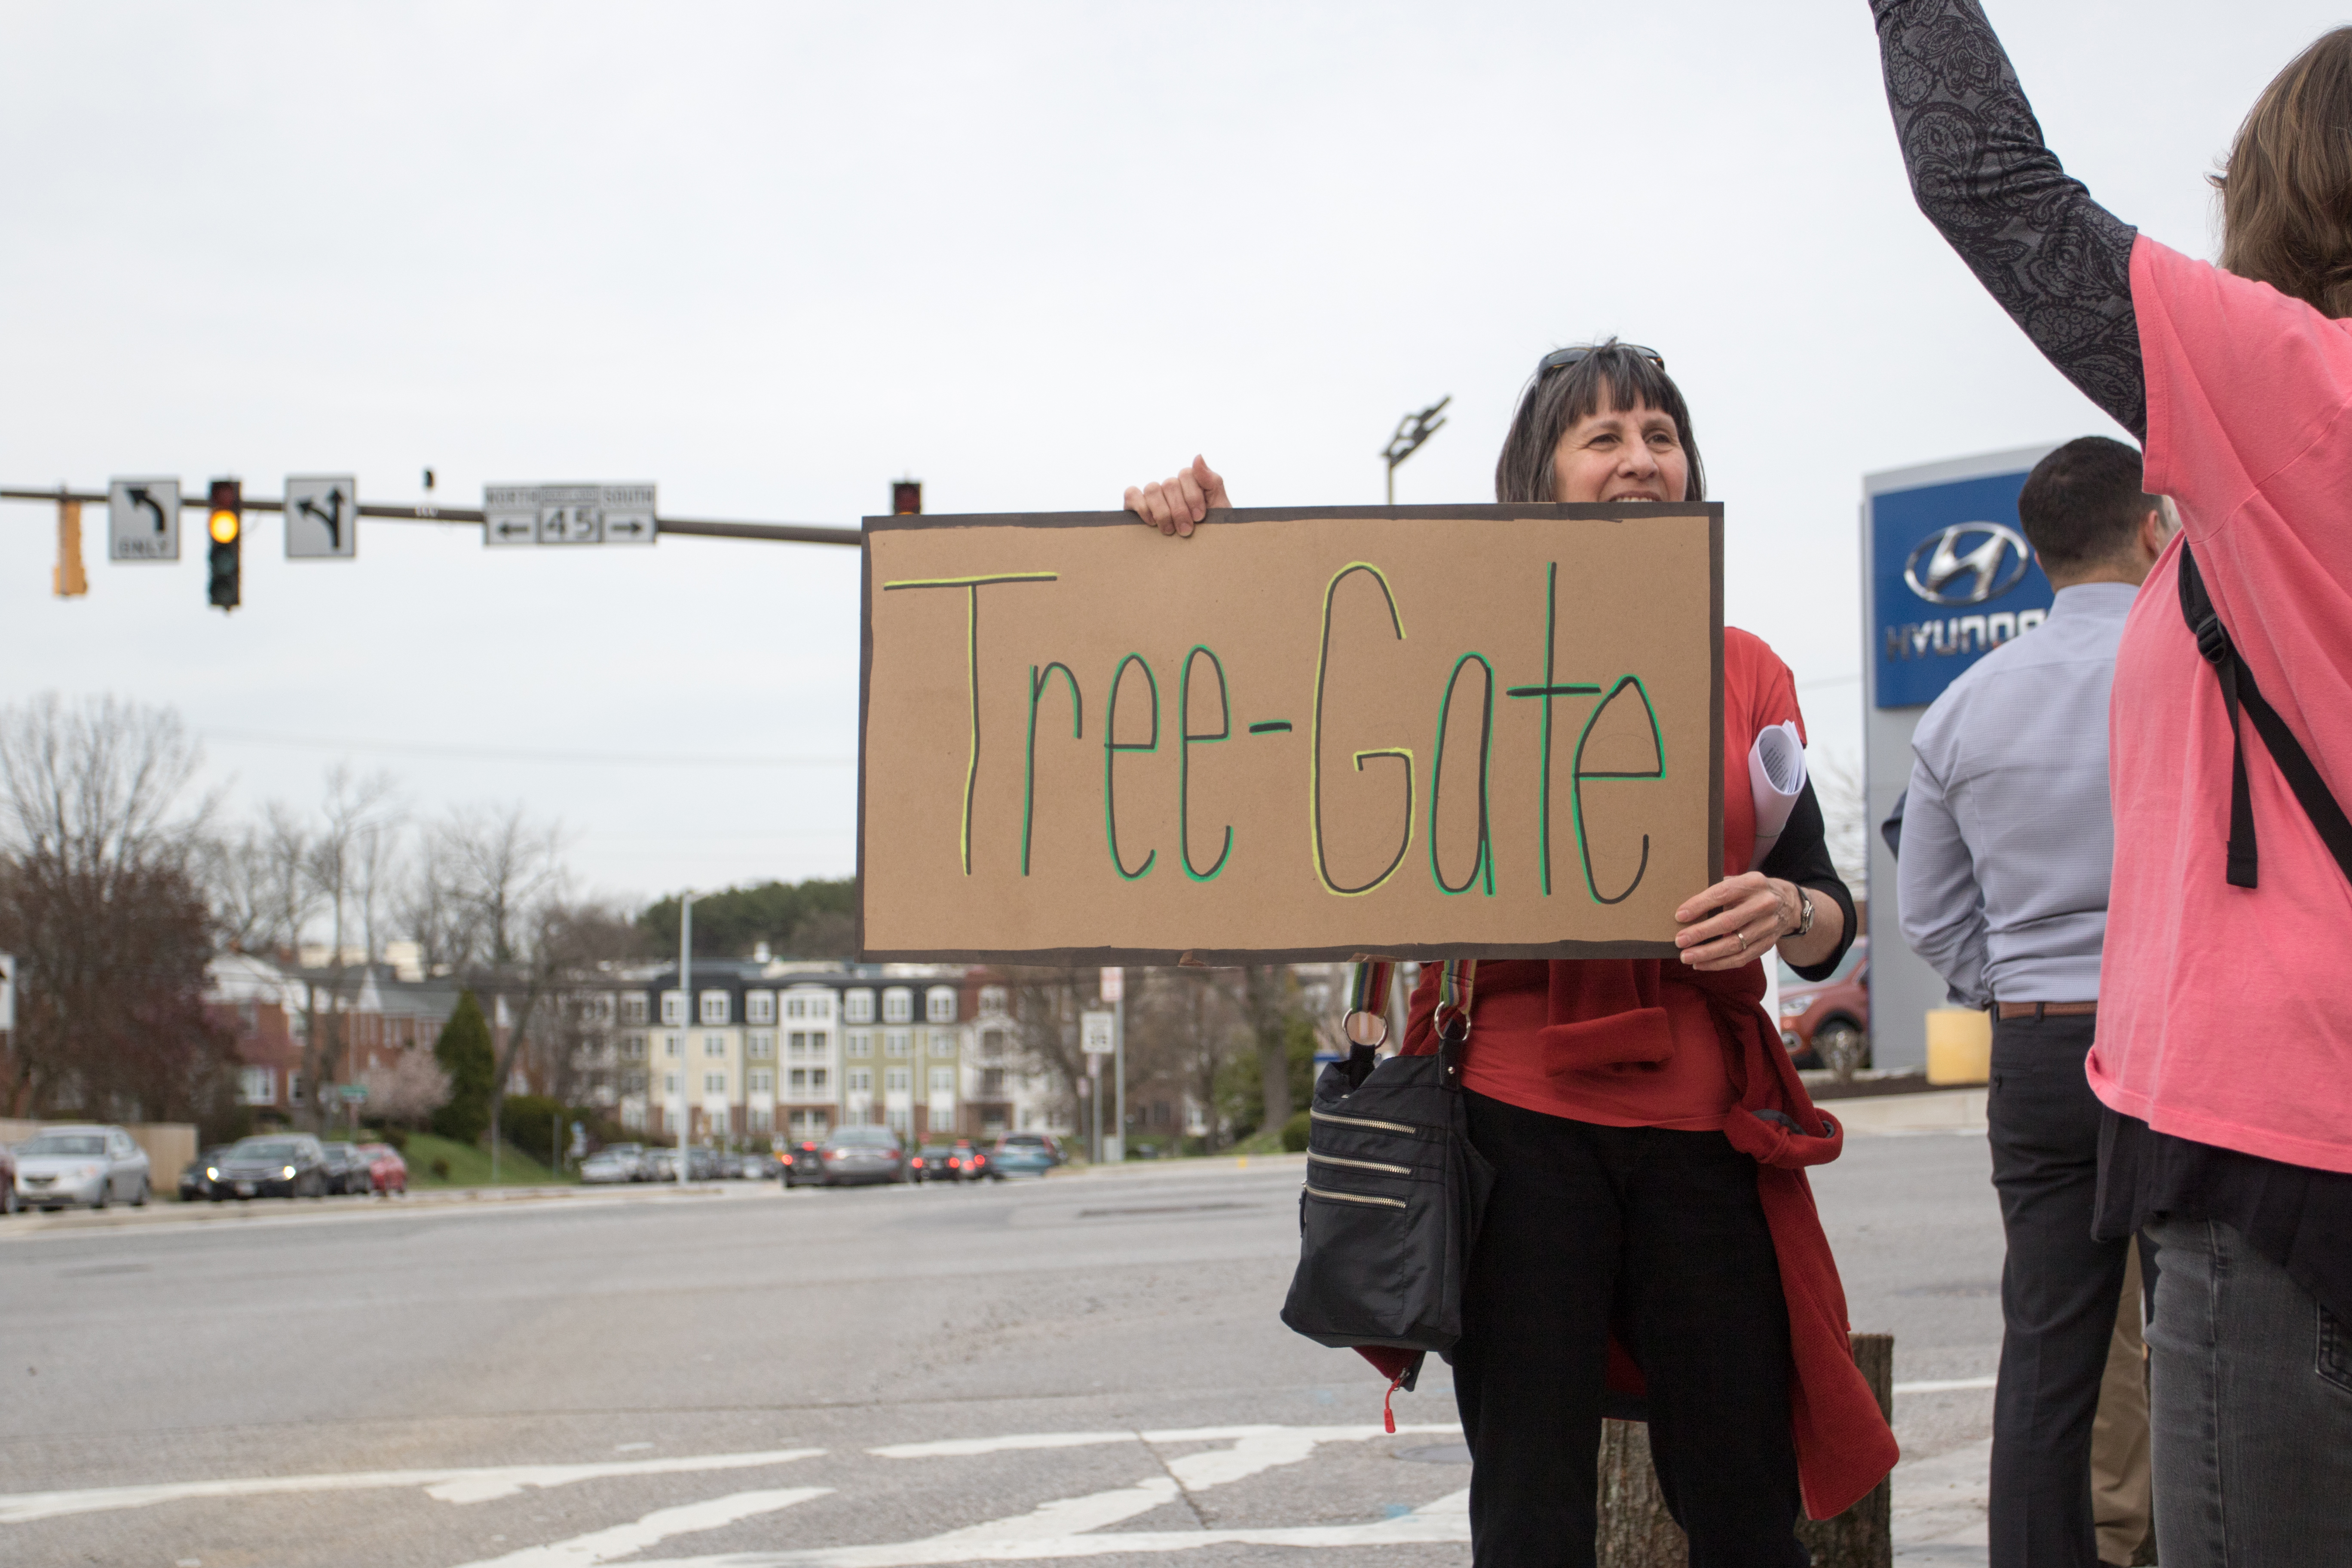 Brenda Bodain was one of the organizers of the rally by getting the word out about the protest. Photo by Nick Rynes.